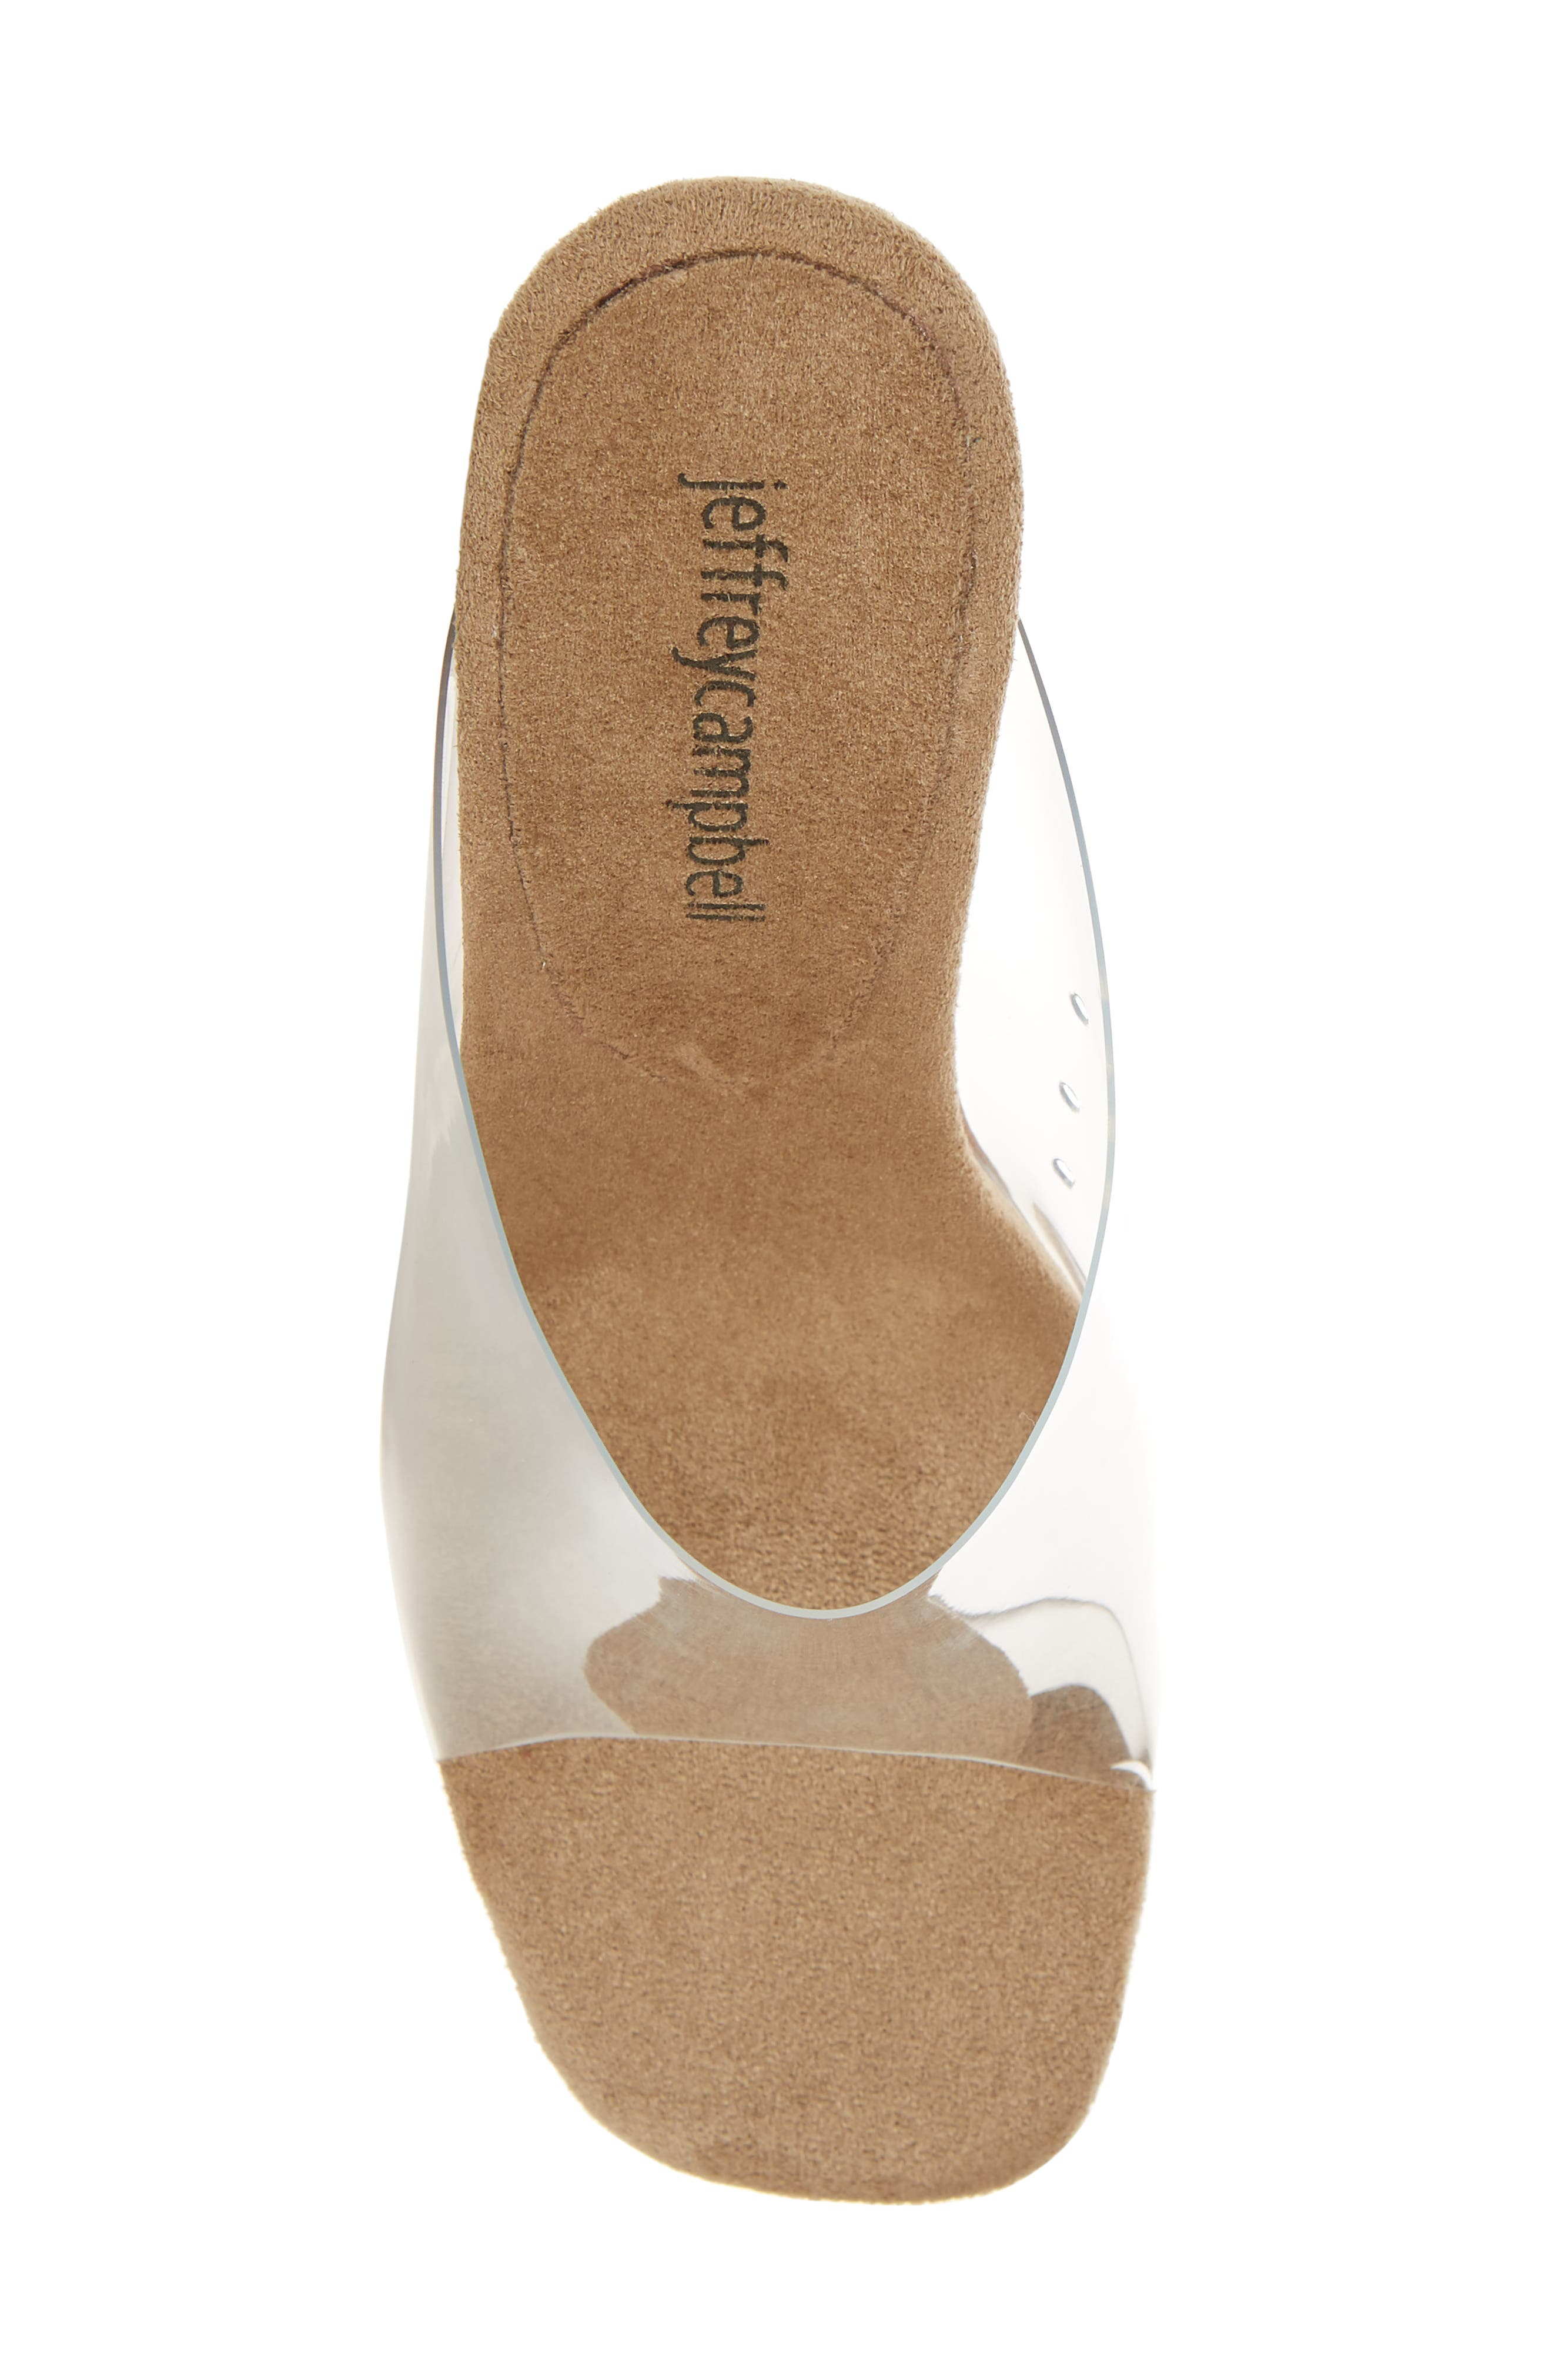 JEFFREY CAMPBELL, Clear Wedge Mule, Alternate thumbnail 5, color, CLEAR FAUX LEATHER